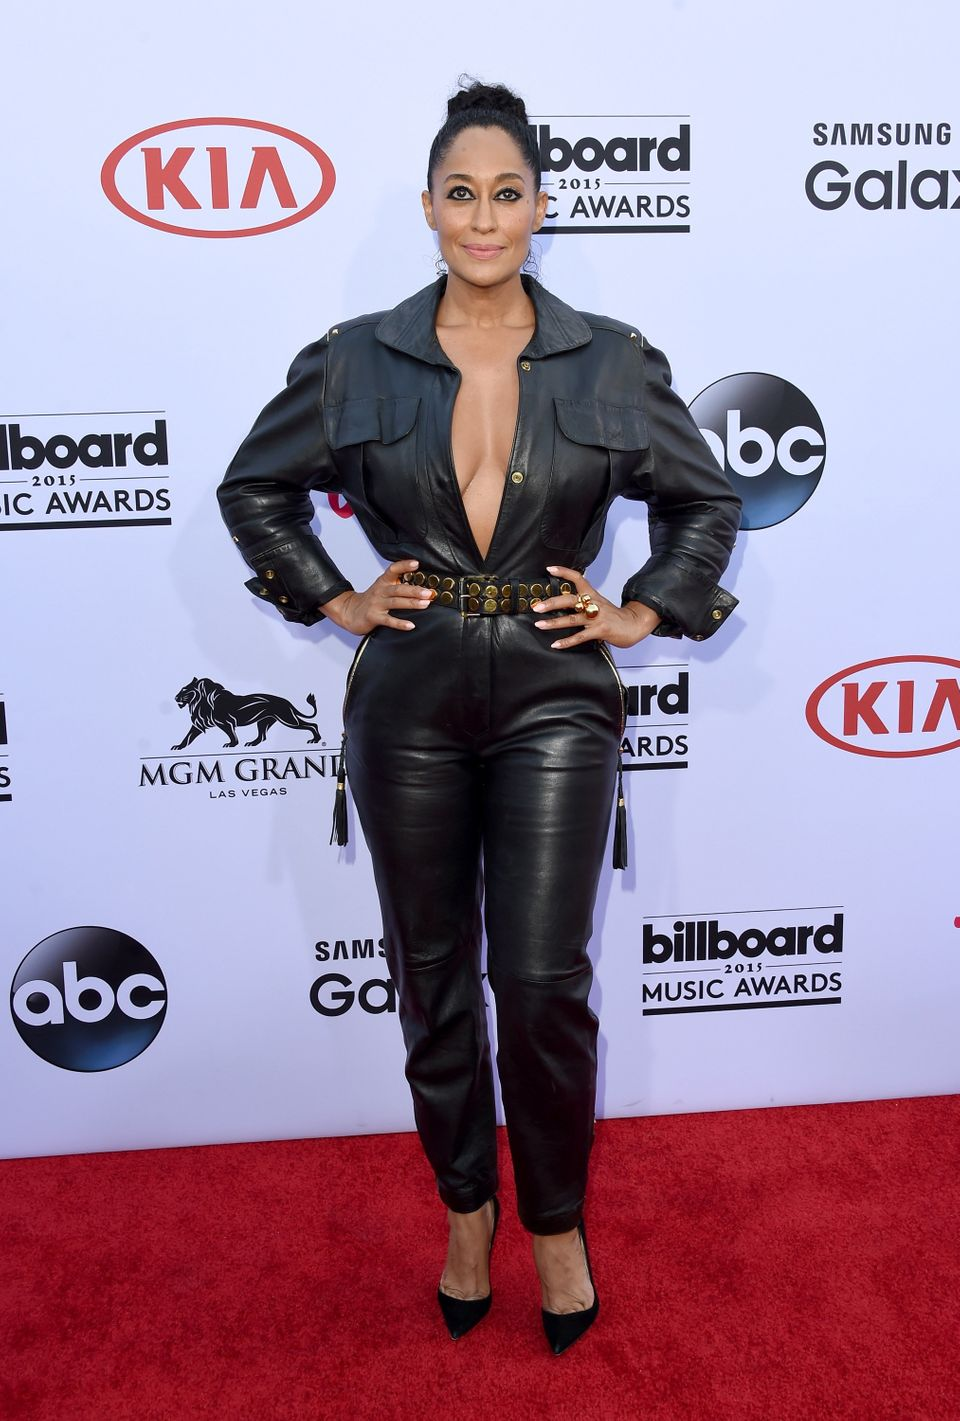 LAS VEGAS, NV - MAY 17:  Actress Tracee Ellis Ross attends the 2015 Billboard Music Awards at MGM Grand Garden Arena on May 1